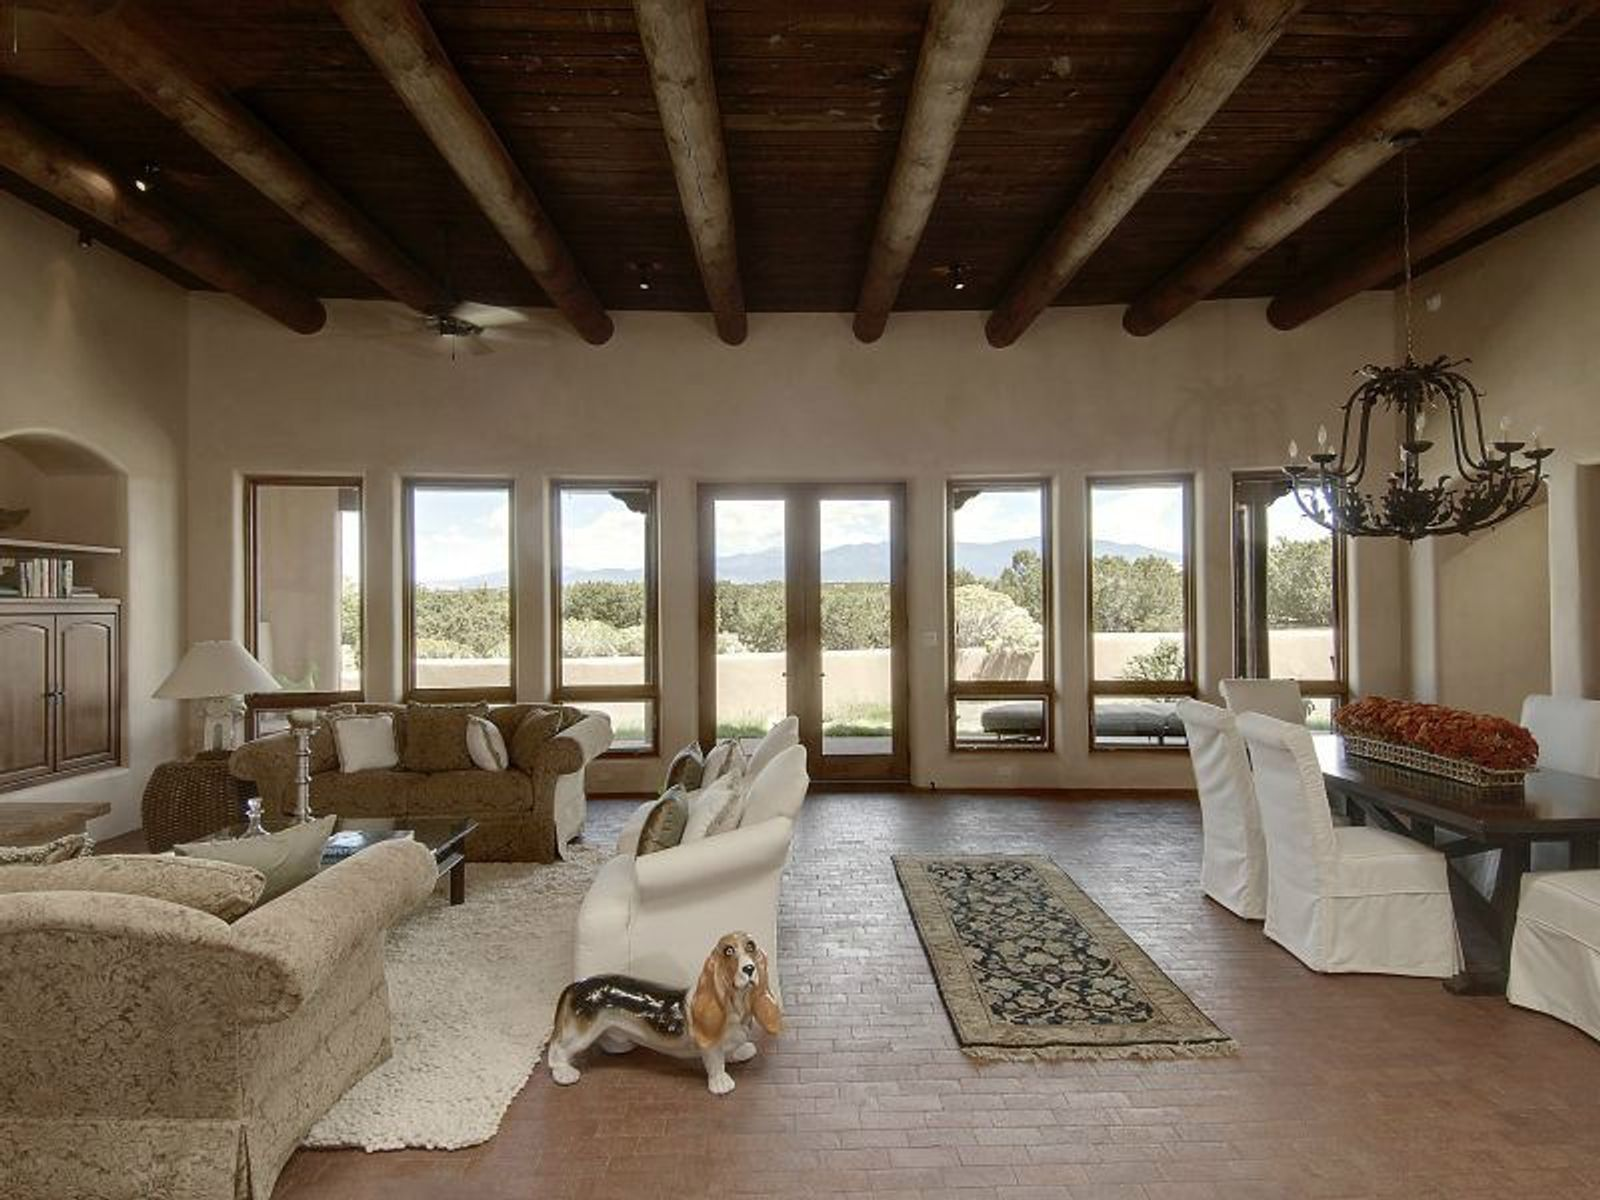 10 Dayflower Drive, Santa Fe NM Single Family Home - Santa Fe Real Estate